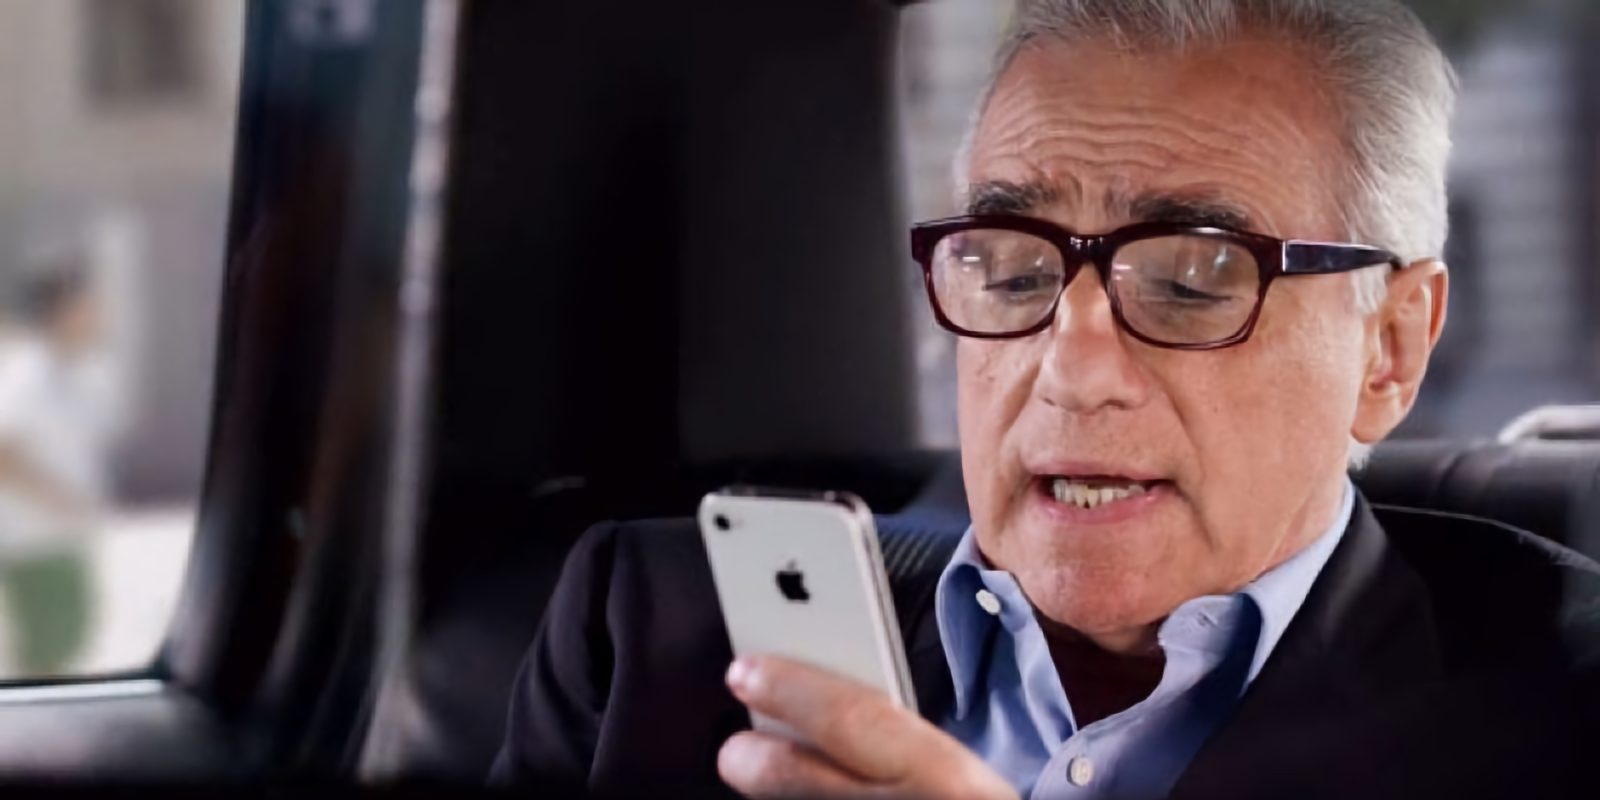 Apple TV+ inks multi-year first-look production agreement with Martin Scorsese